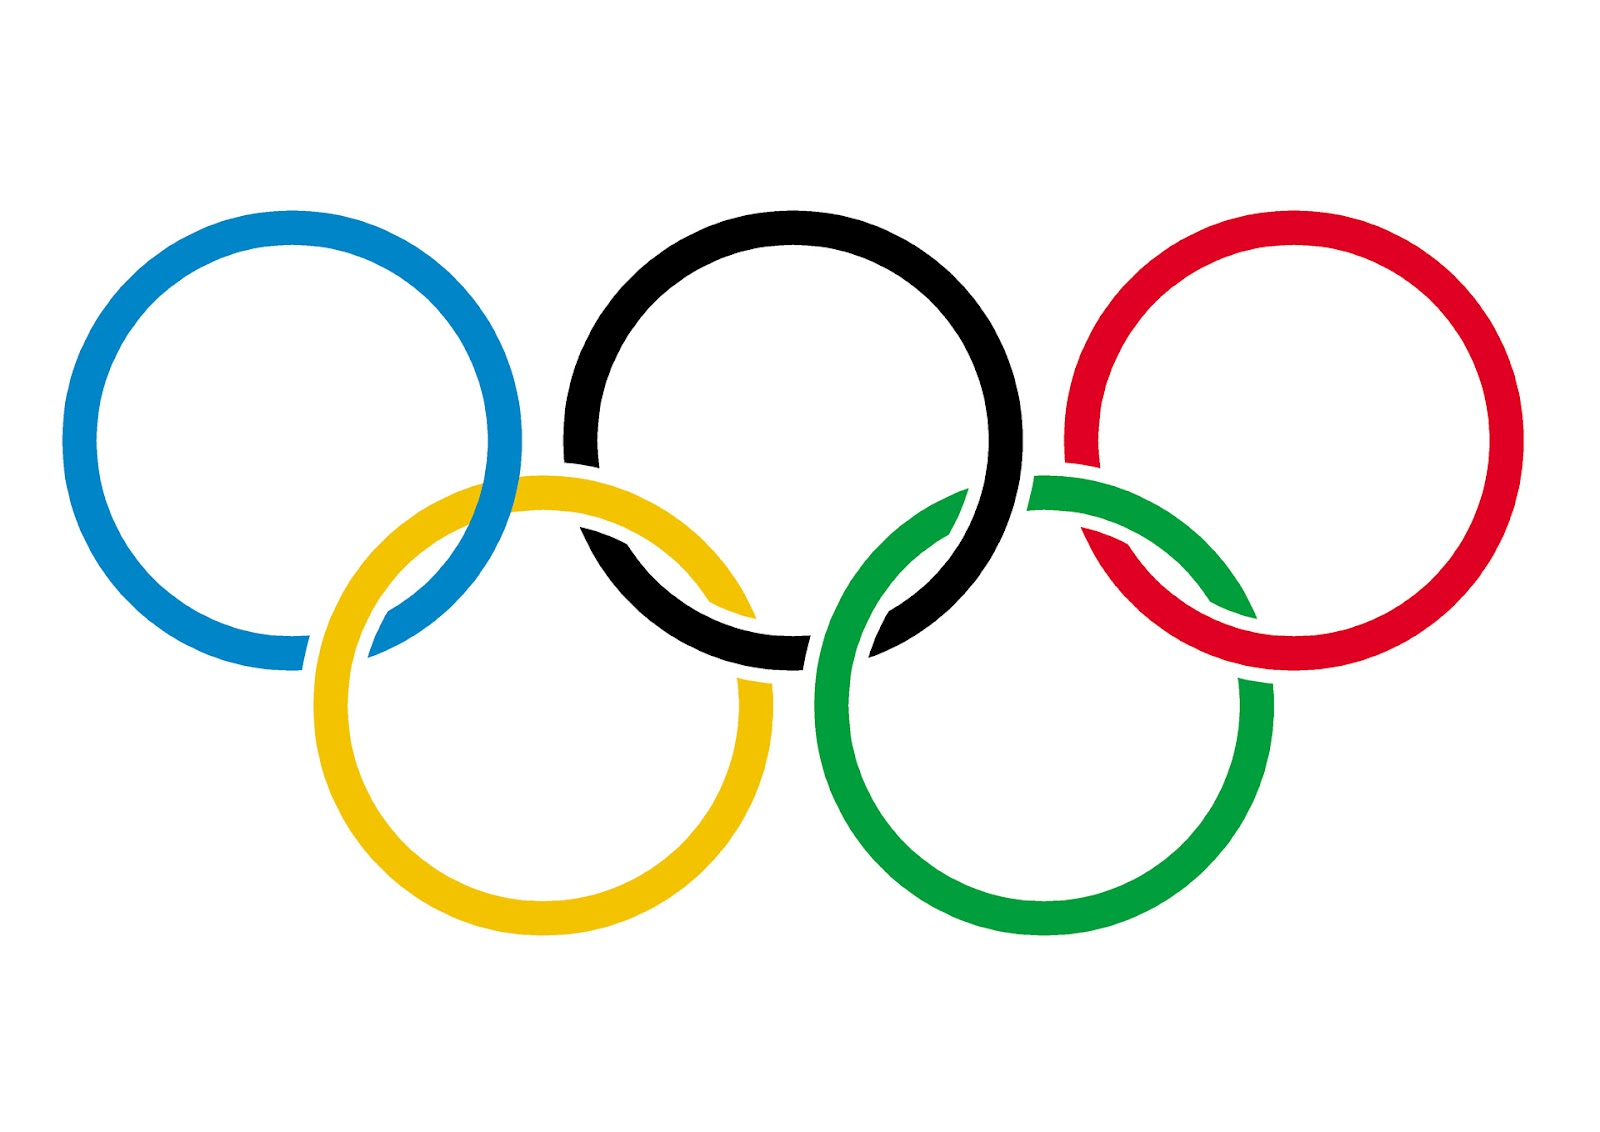 Olympic Rings 3 Free Stock Photo - Public Domain Pictures